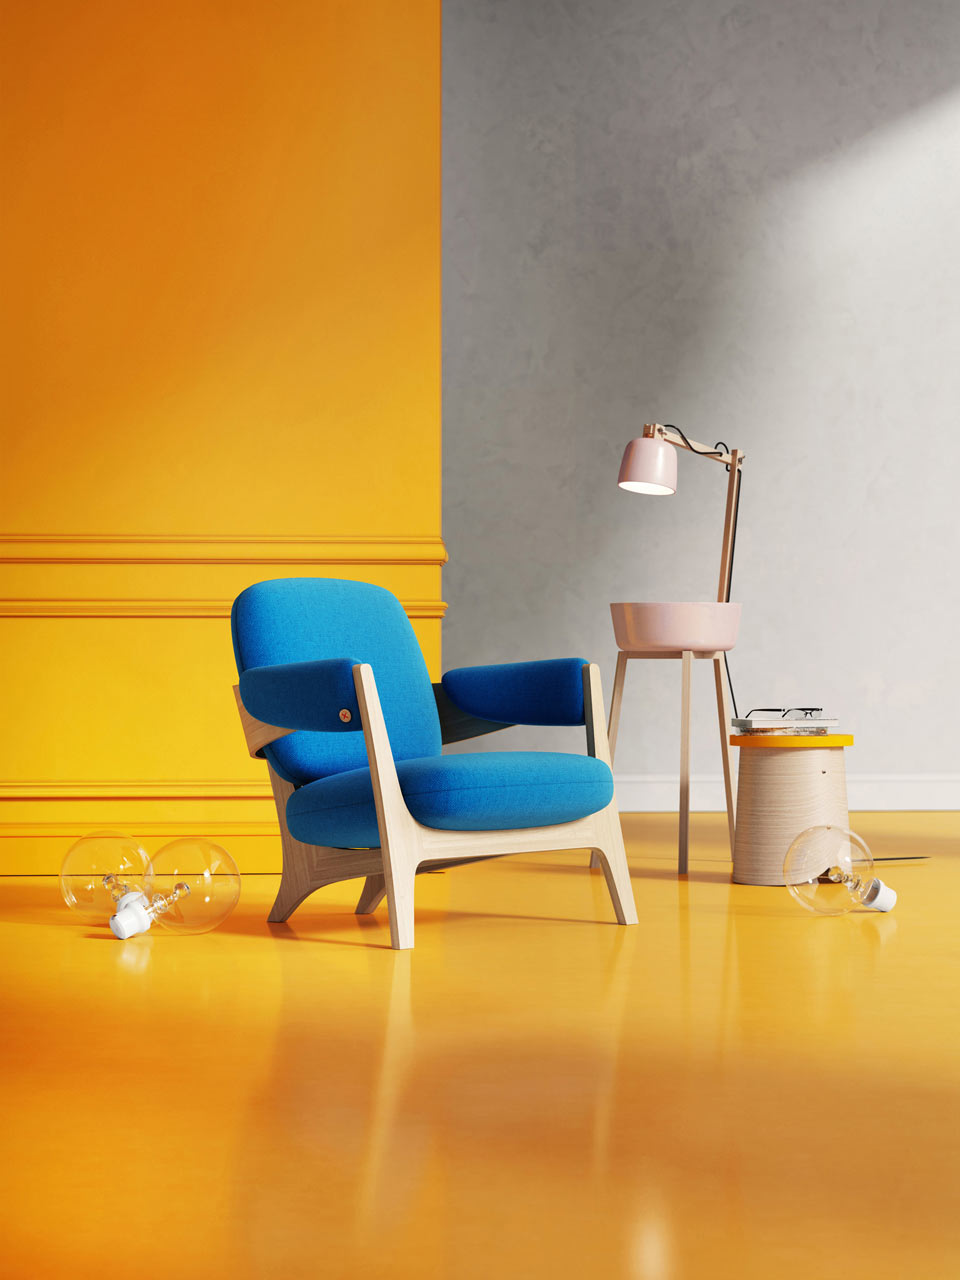 Candy Brings a Fresh Approach to Seating